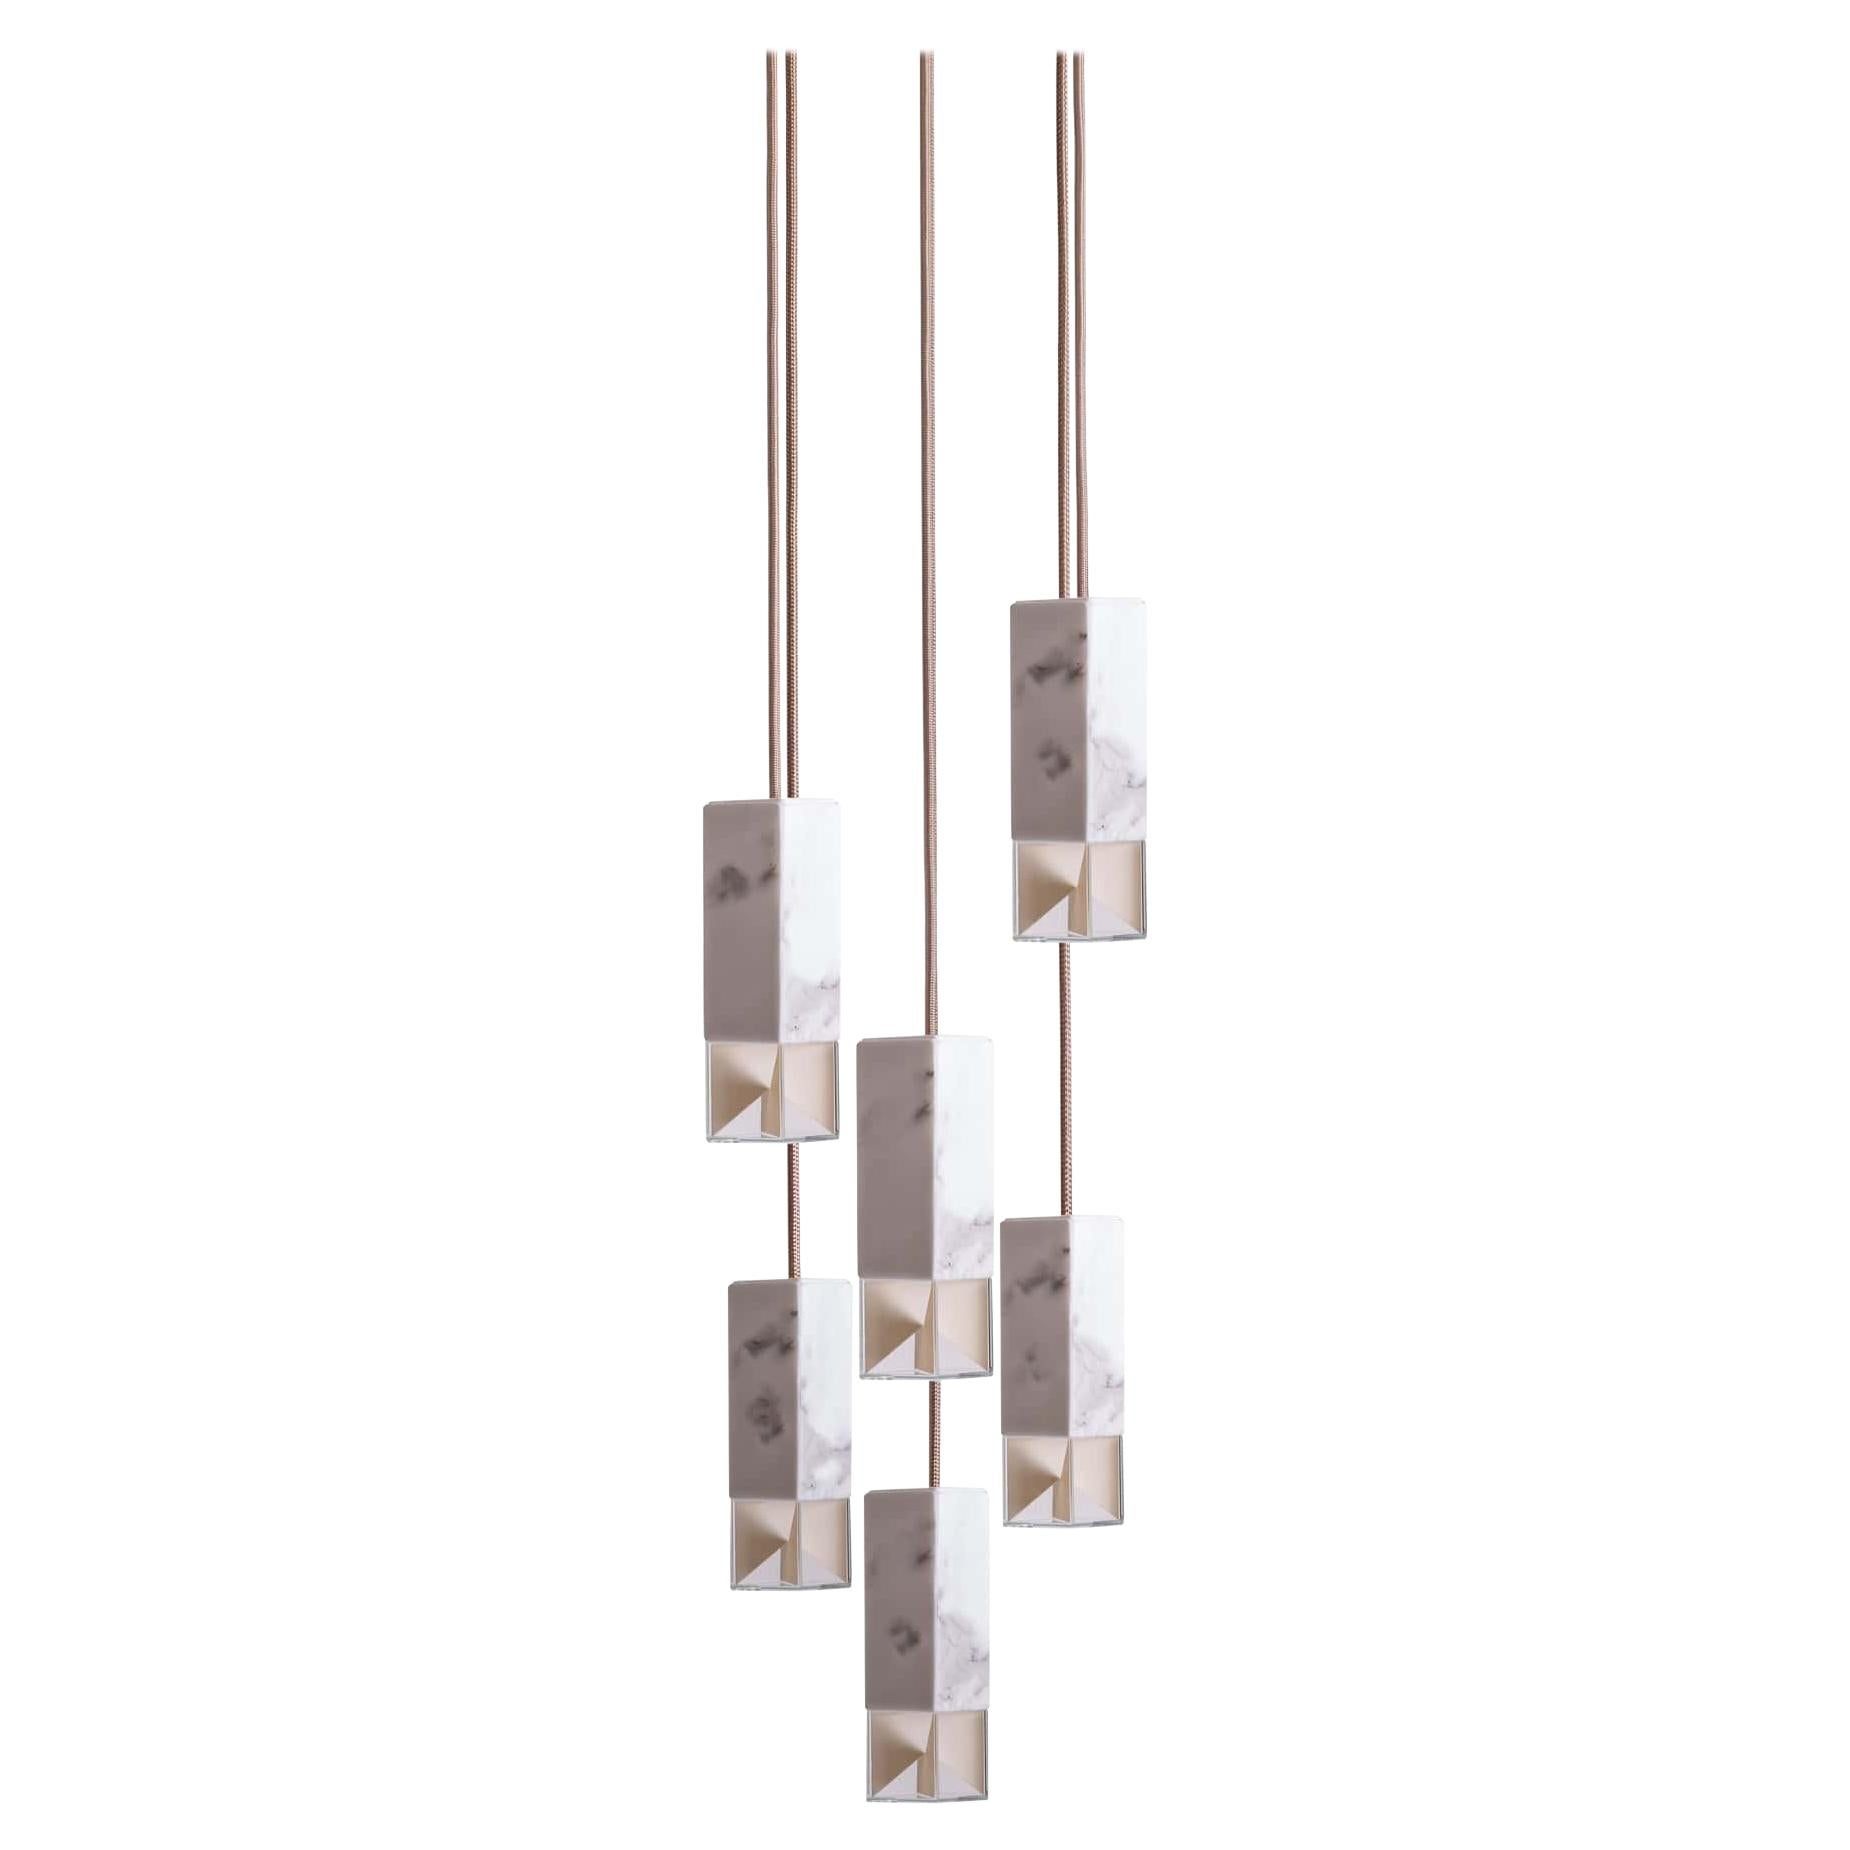 Lamp One 6-Light Chandelier in Marble by Formaminima